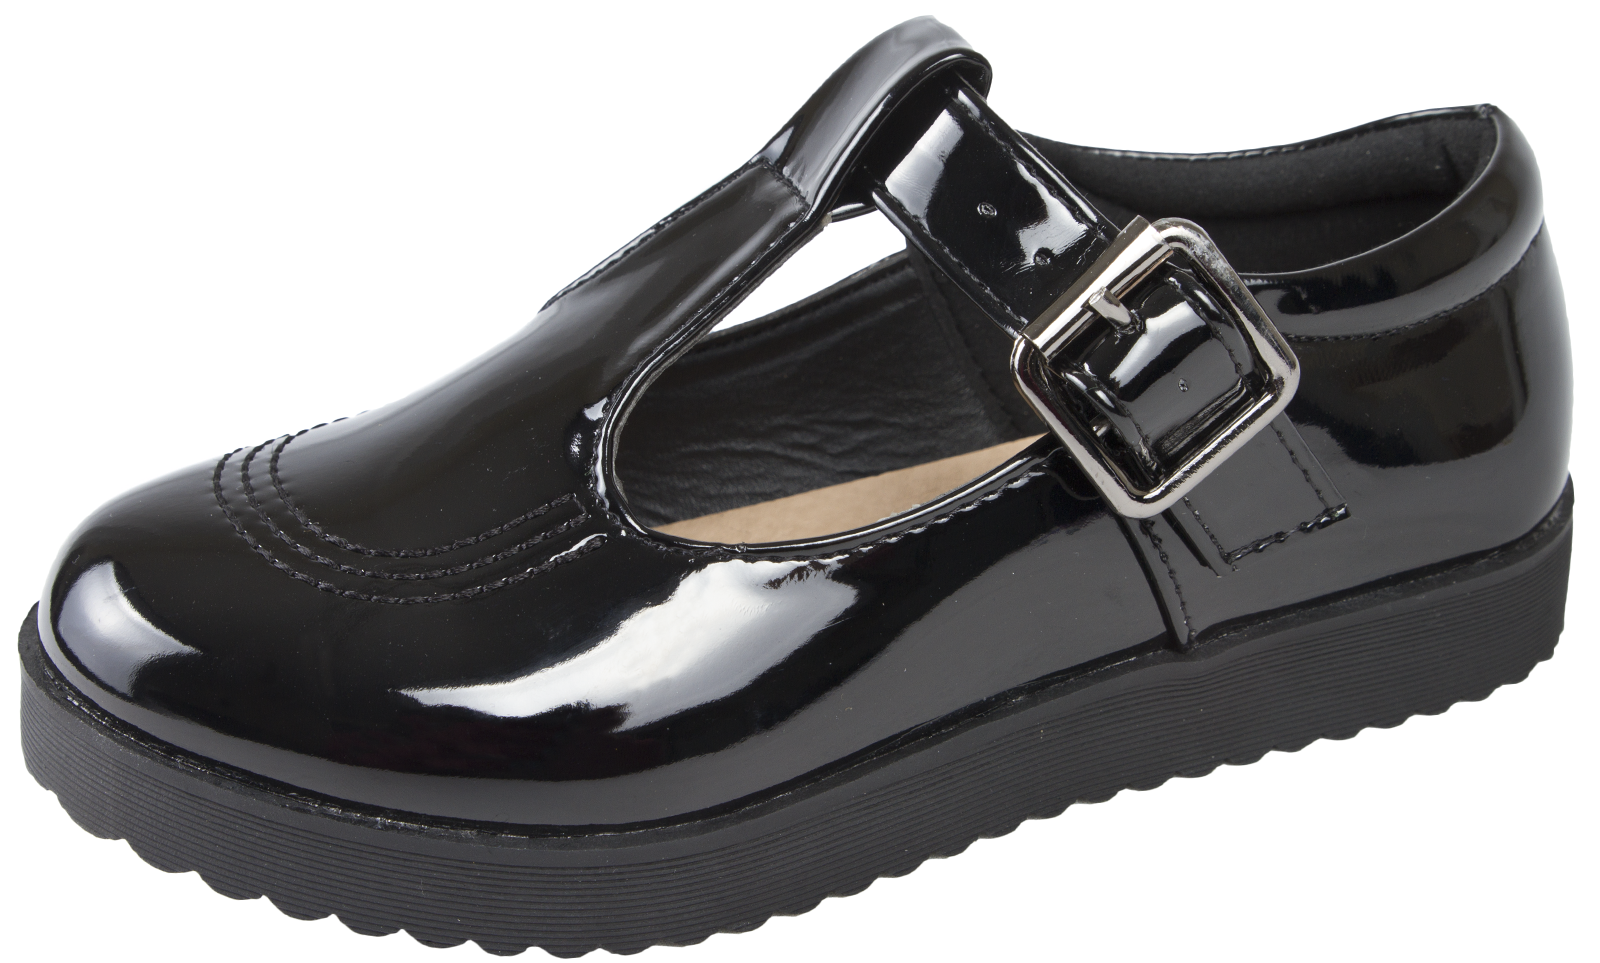 Black Girls Shoes Sale: Save Up to 60% Off! Shop topinsurances.ga's huge selection of Black Shoes for Girls - Over styles available. FREE Shipping & Exchanges, and a % price guarantee!